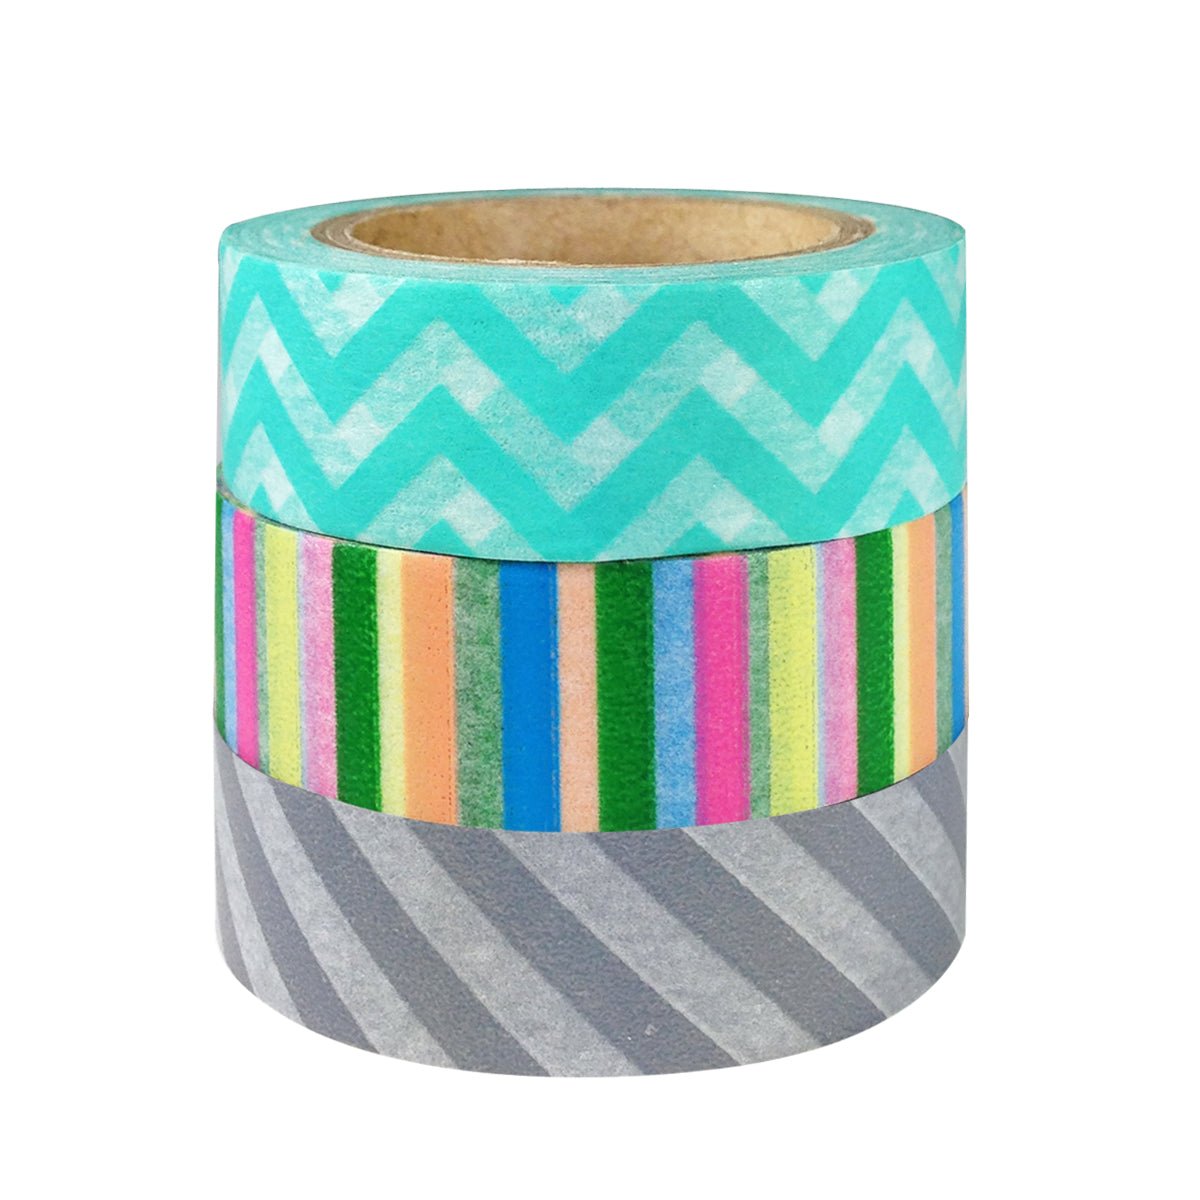 Wrapables Cool Stripes Japanese Washi Masking Tape (set of 3)